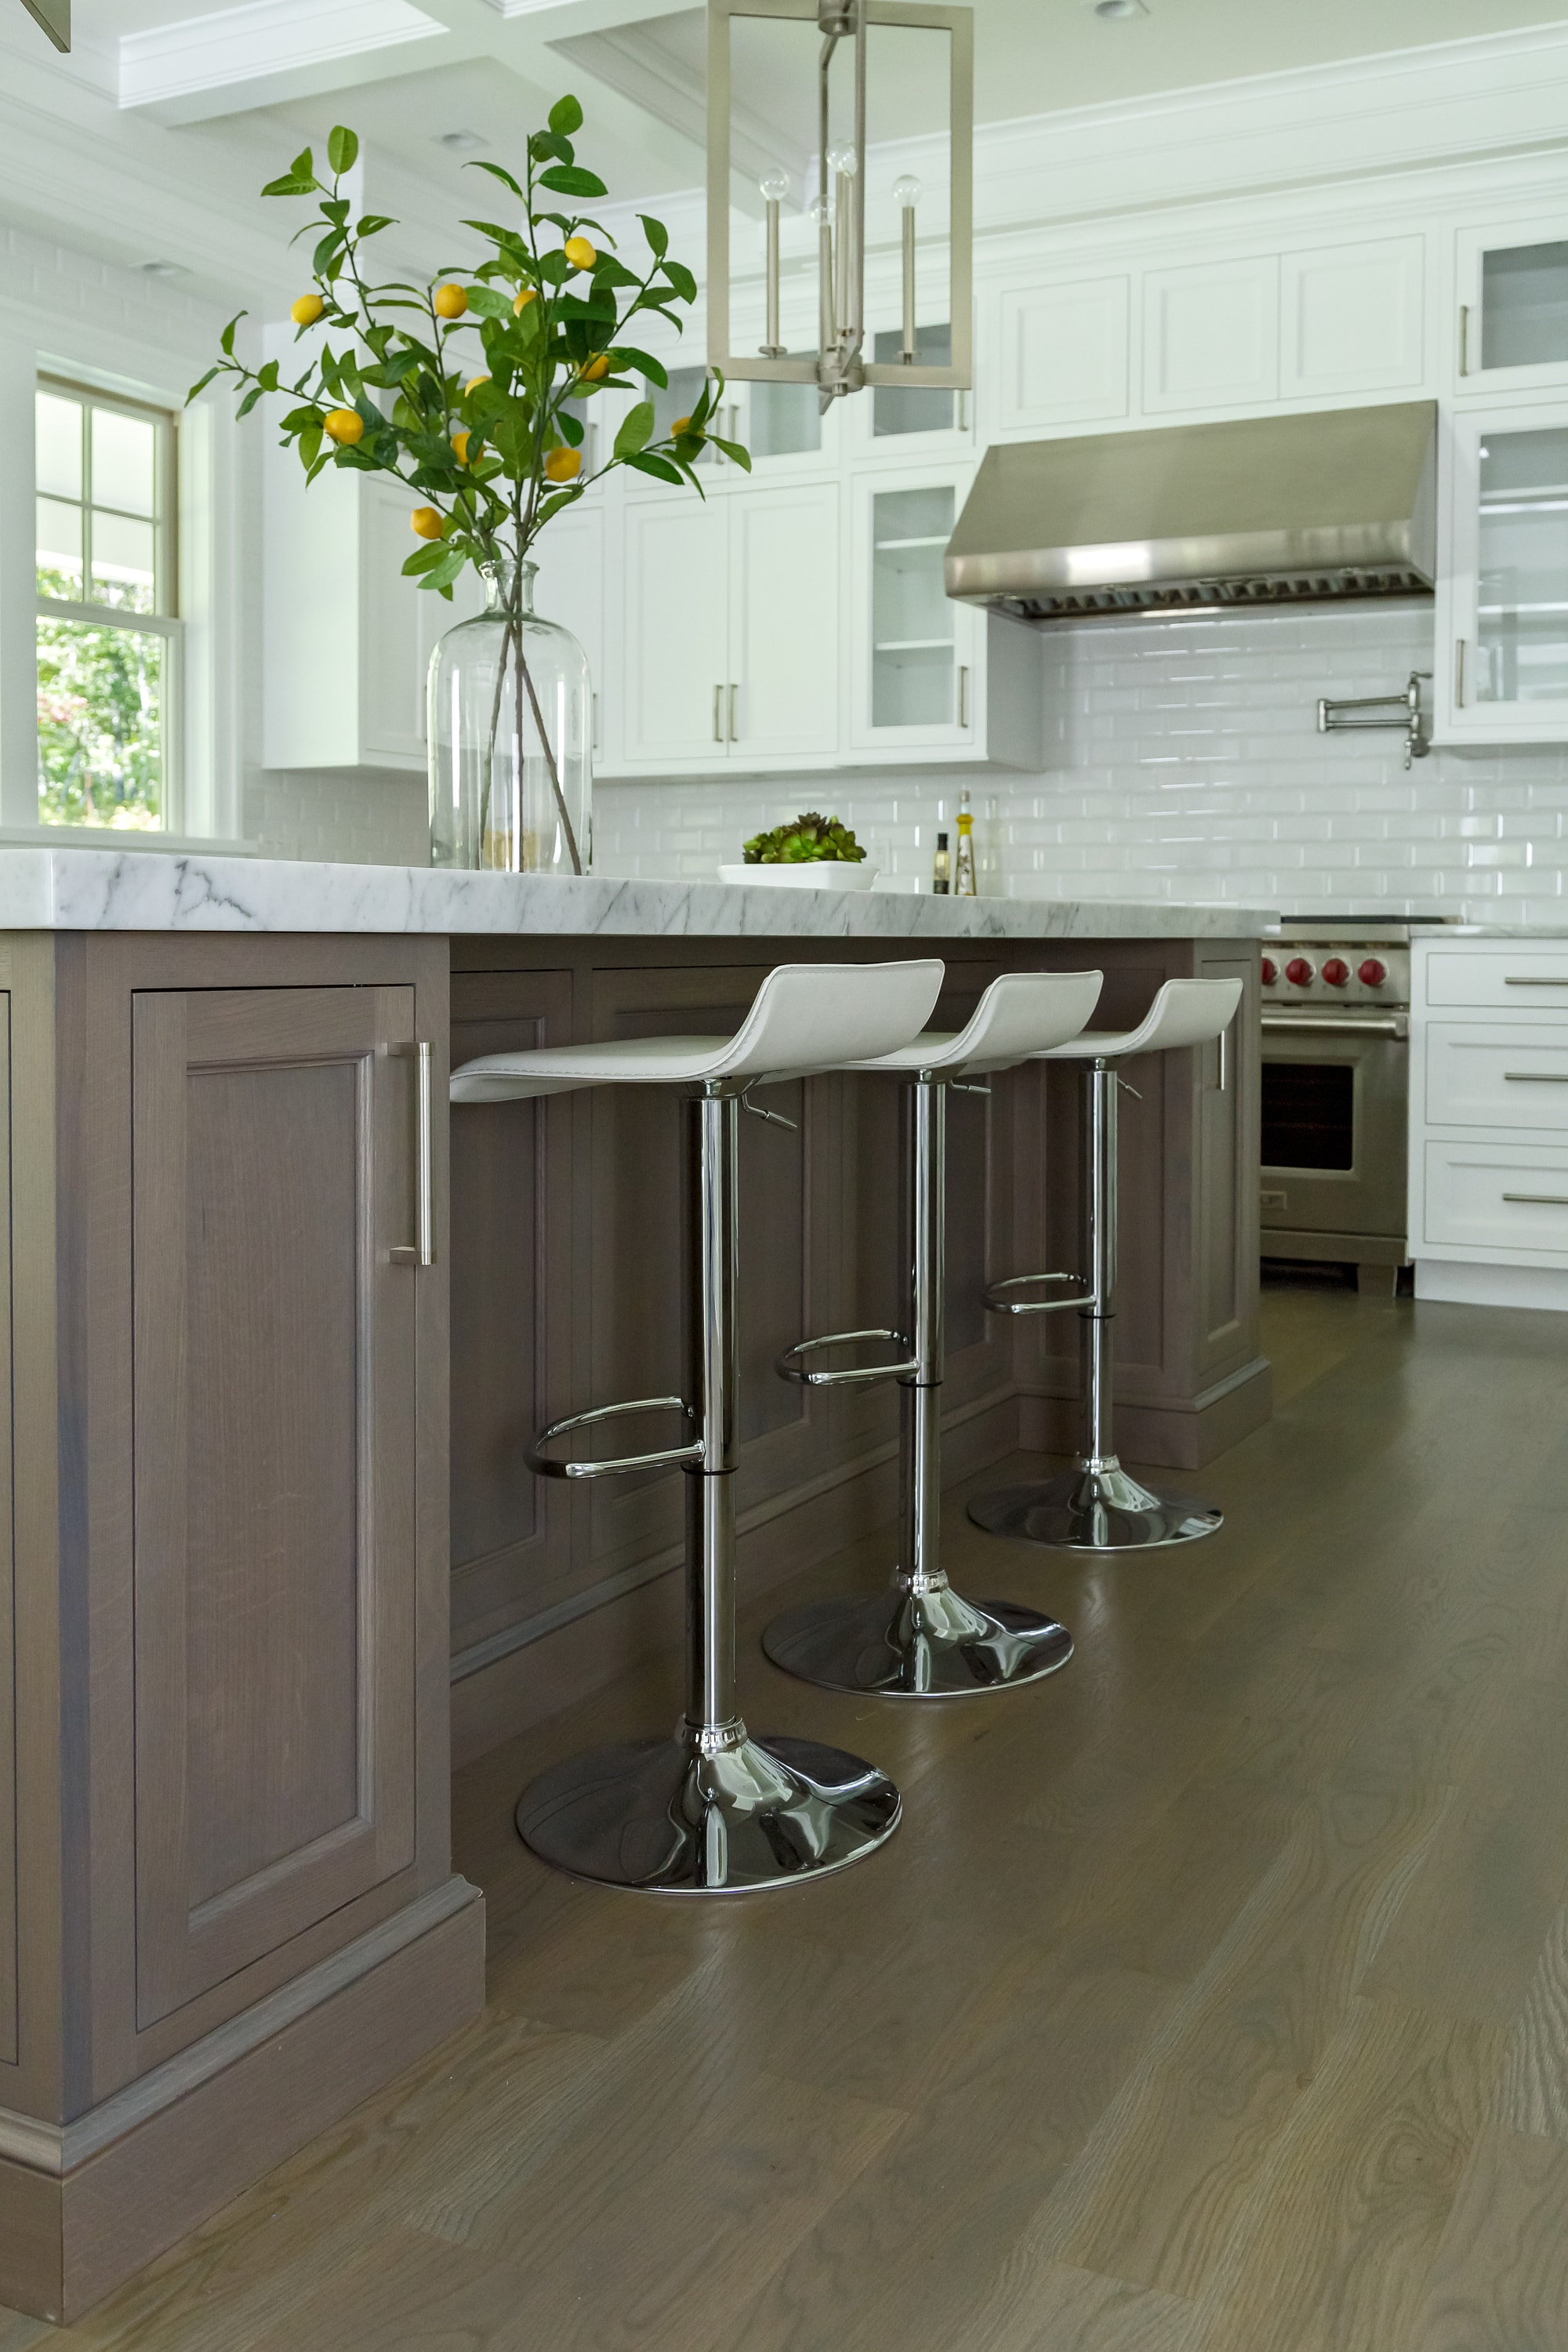 Copy of Transitional style kitchen with three counter stools